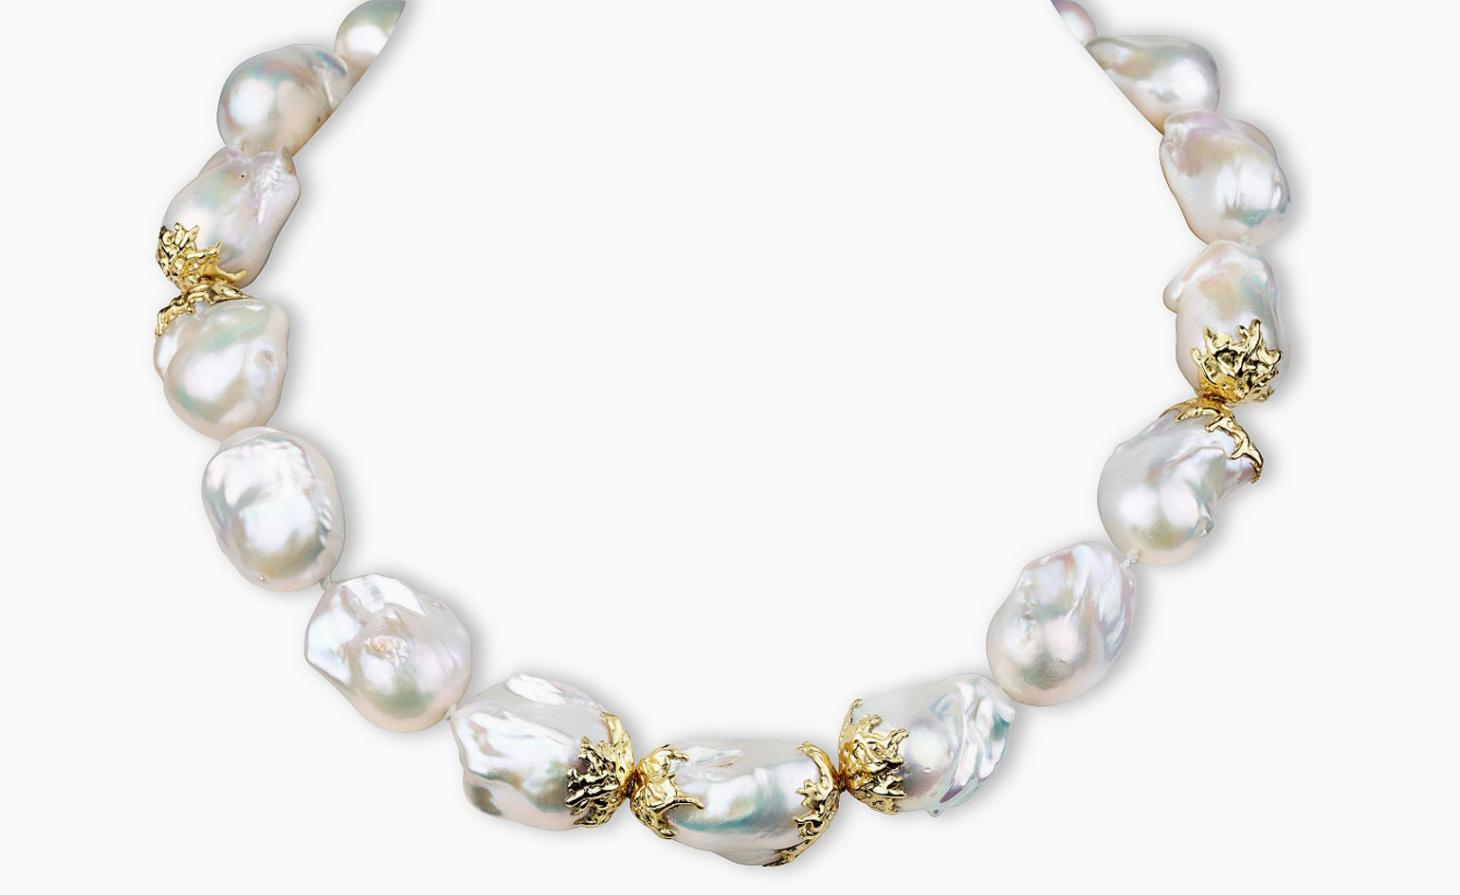 Irregular pearl necklace with gold mounts